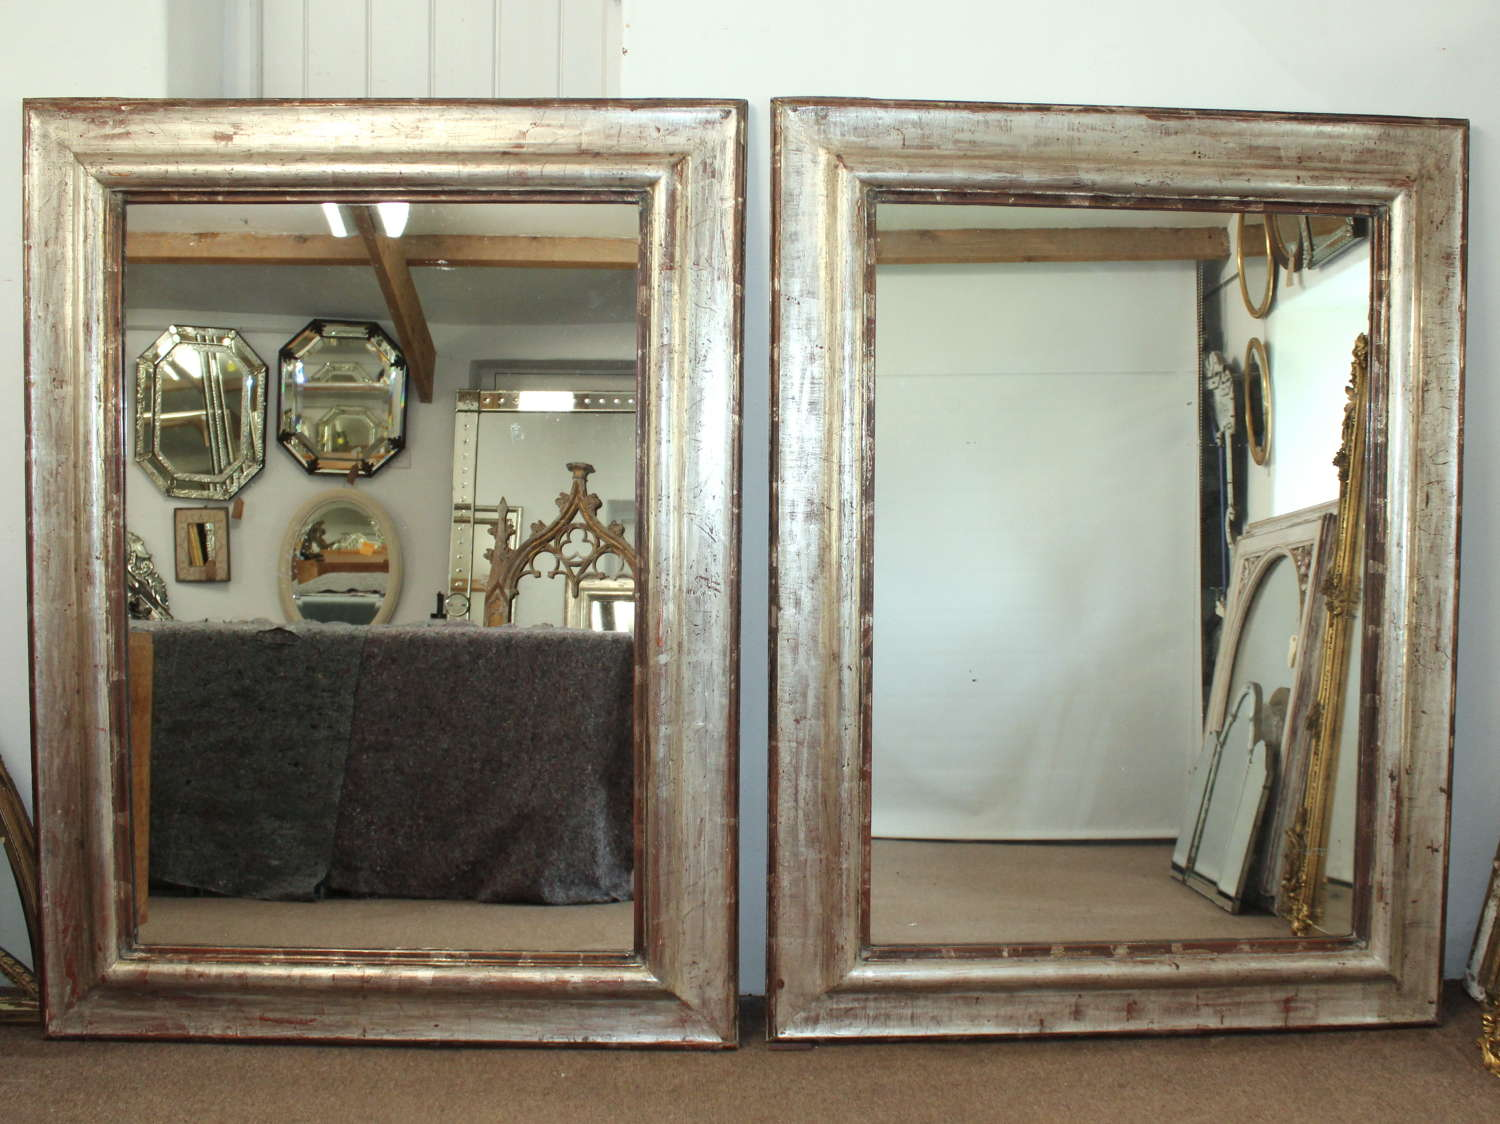 Pair of large architectural Italian silverleafed mirrors